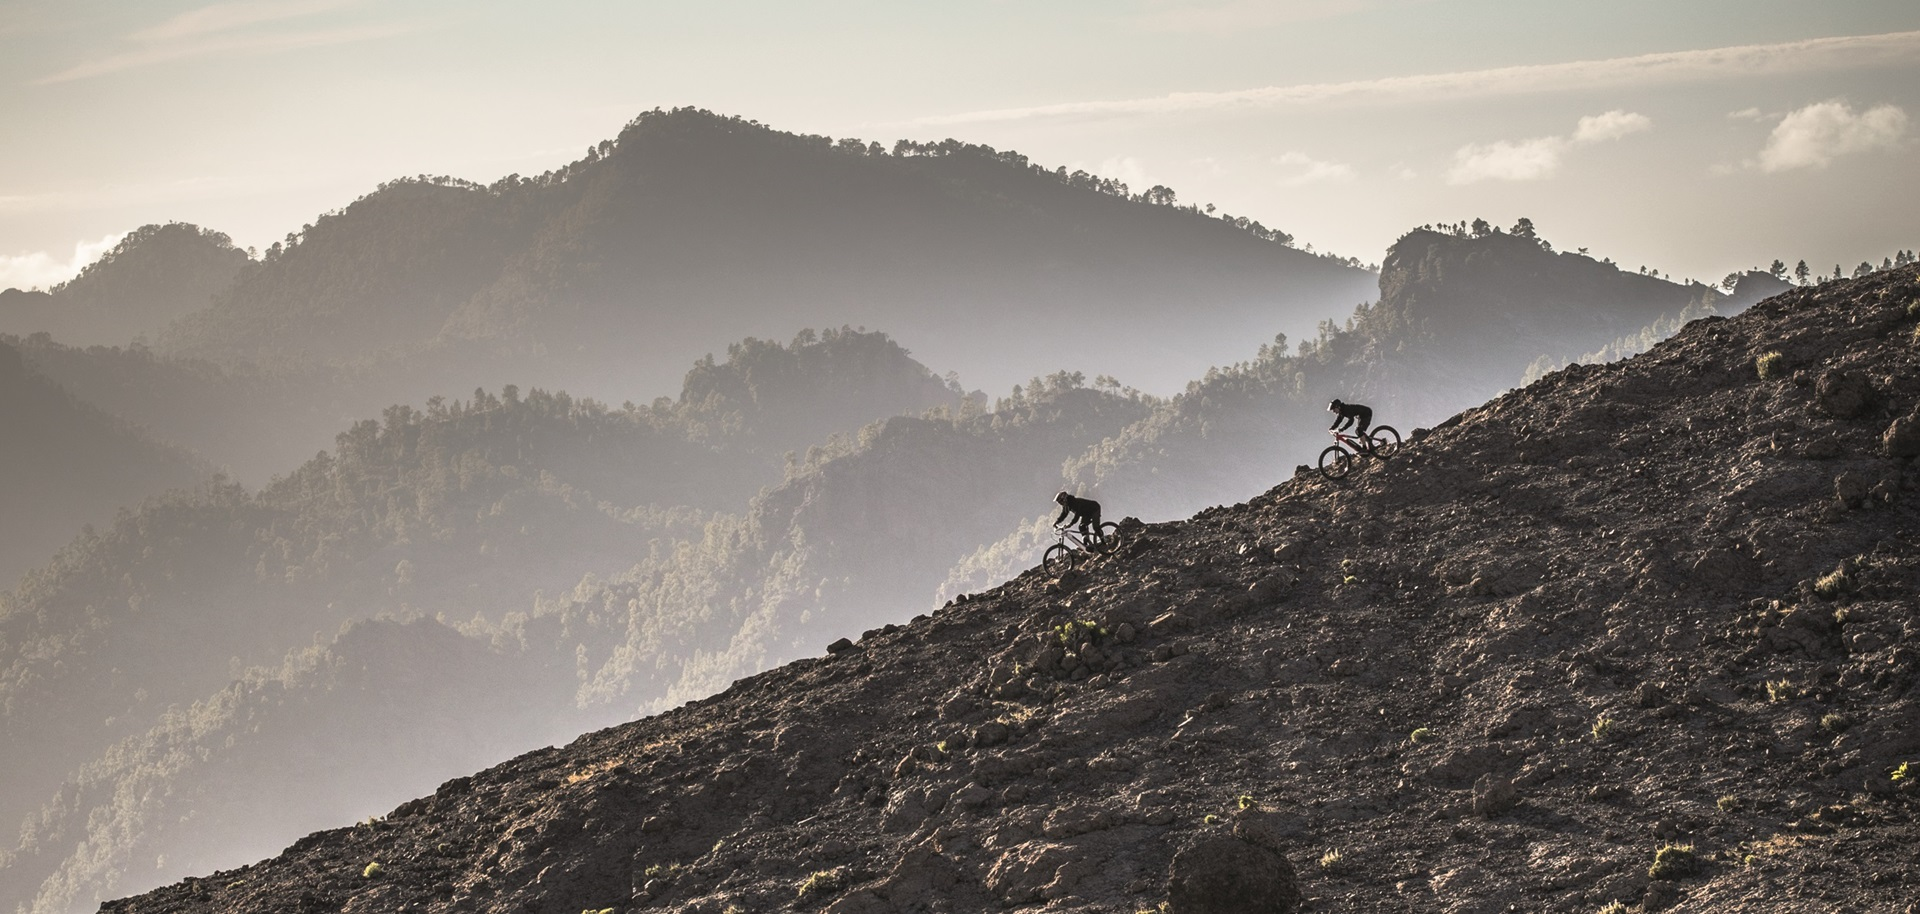 Two Haibike Downhill MTB riders in the mountains